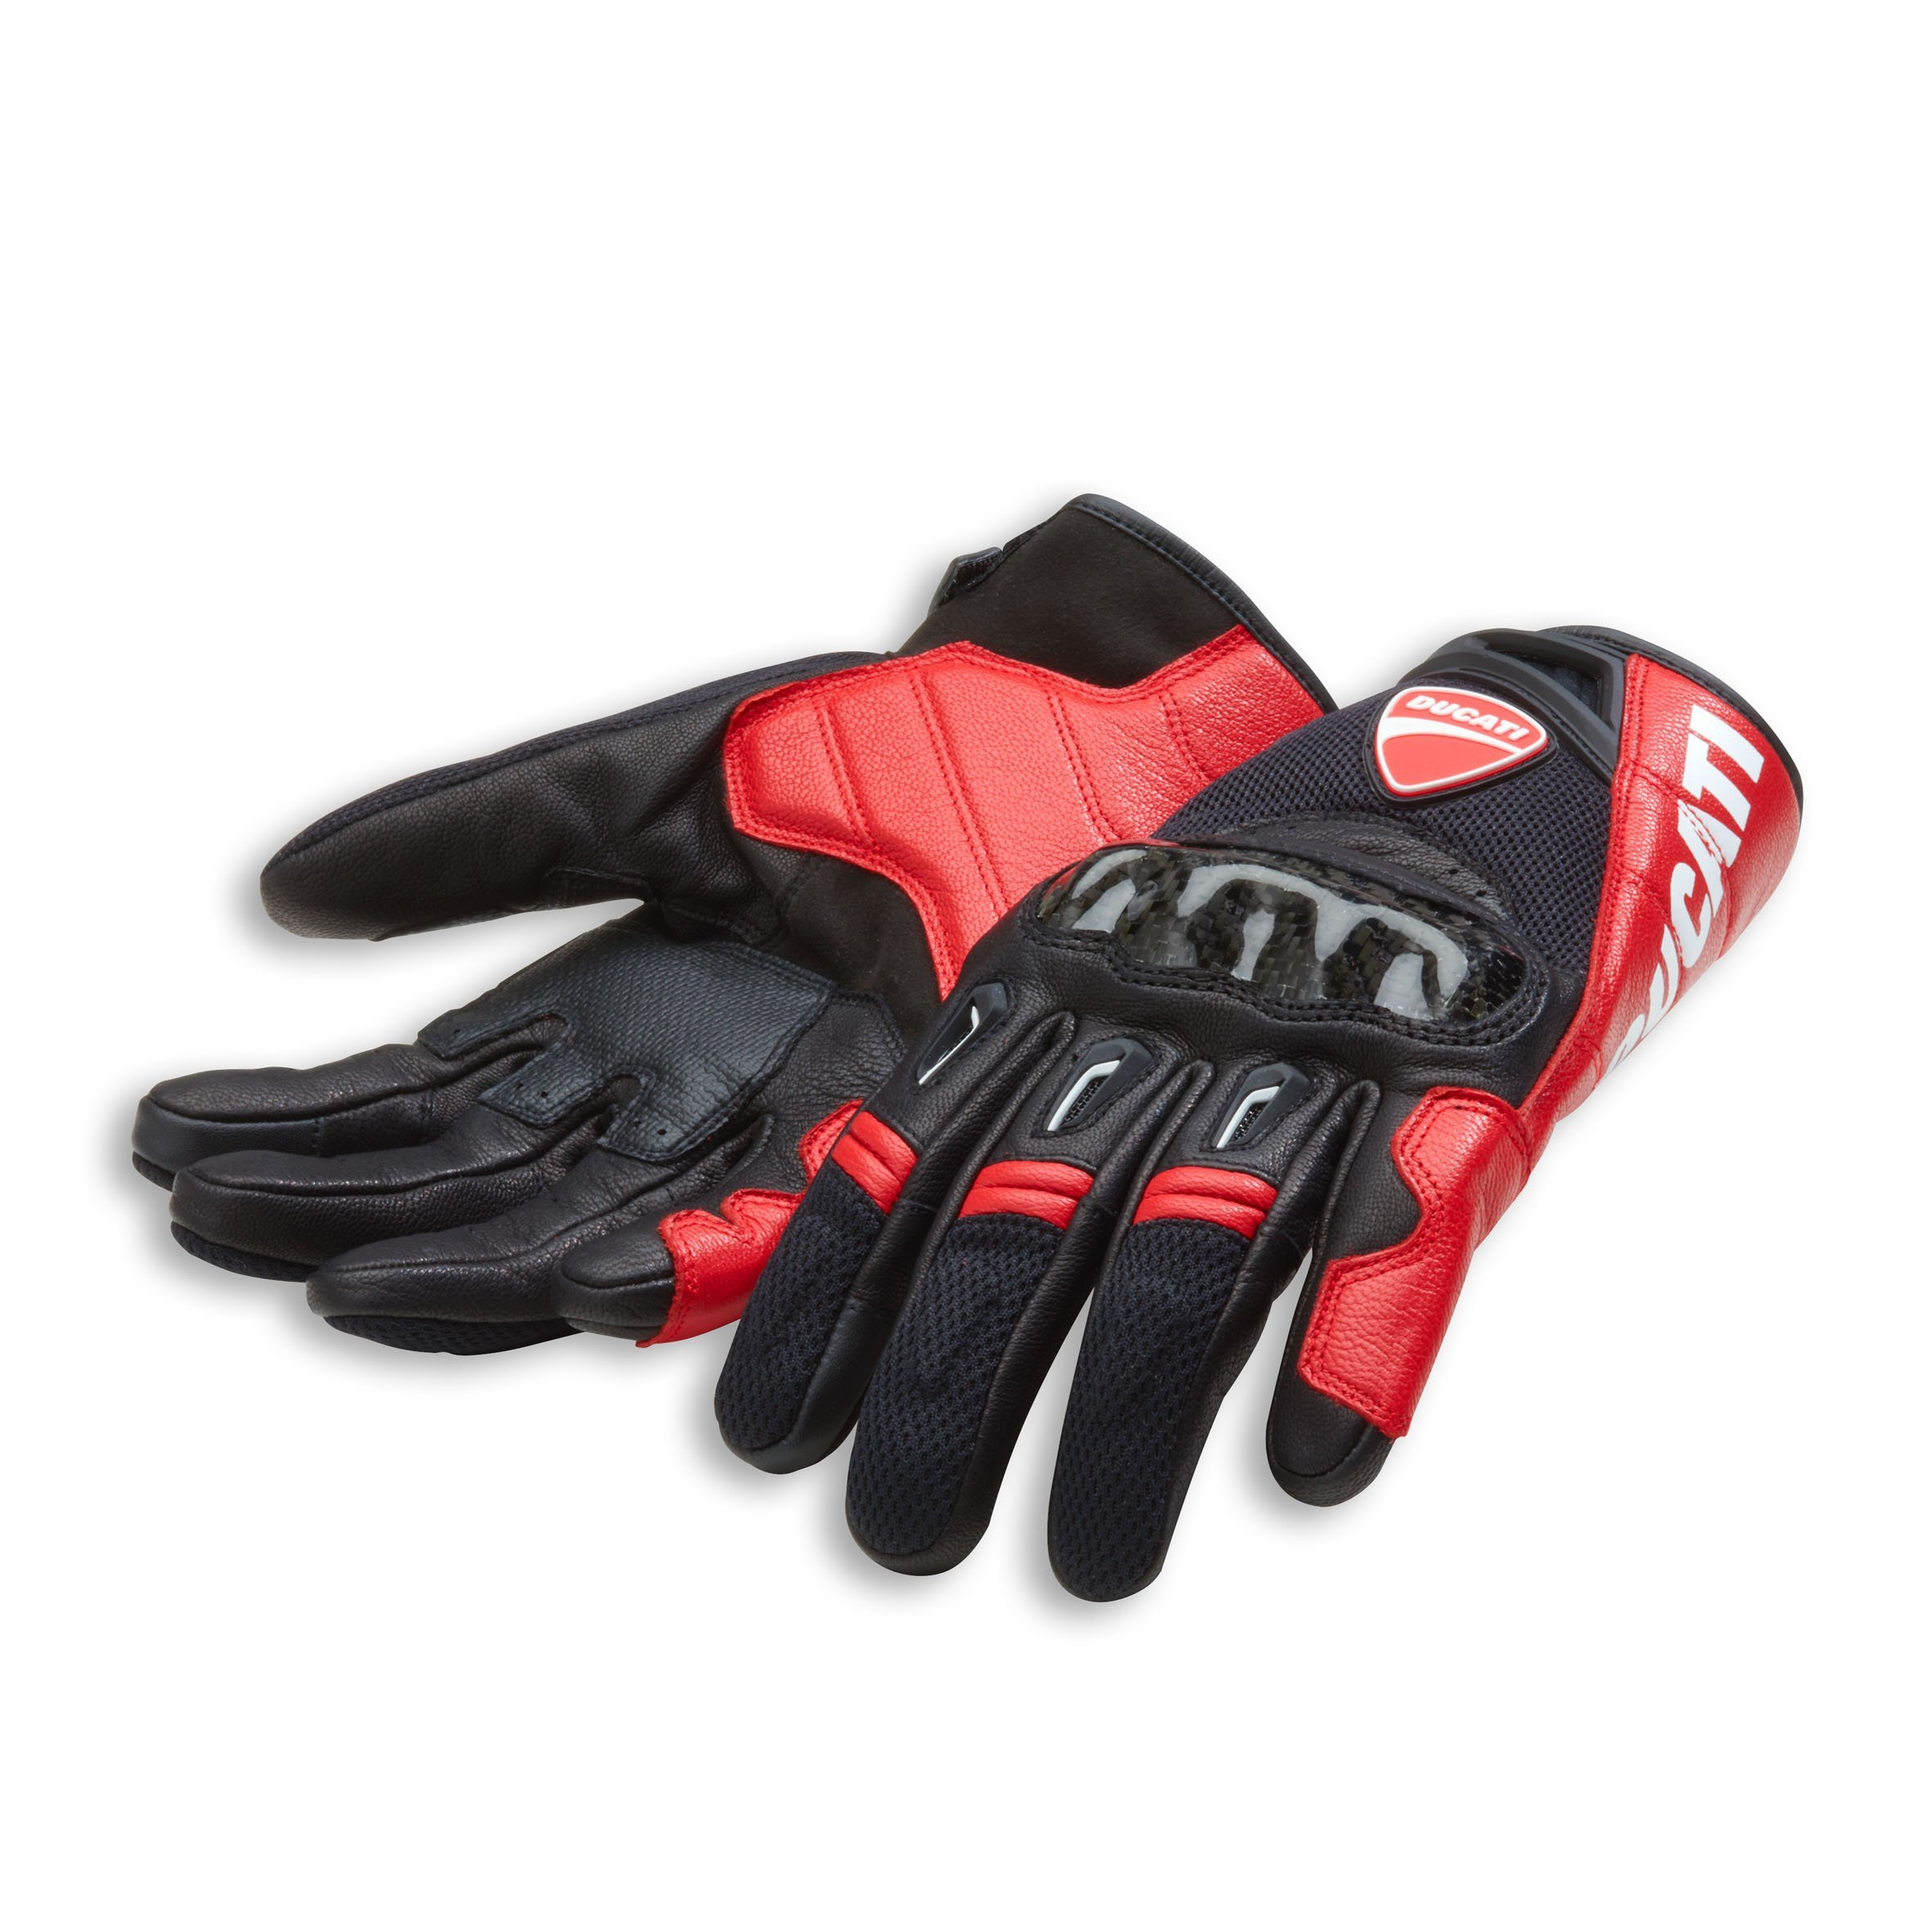 Ducati Company C1 Leather Motorcycle Gloves (2XL, Red/Black) by Ducati (Image #1)